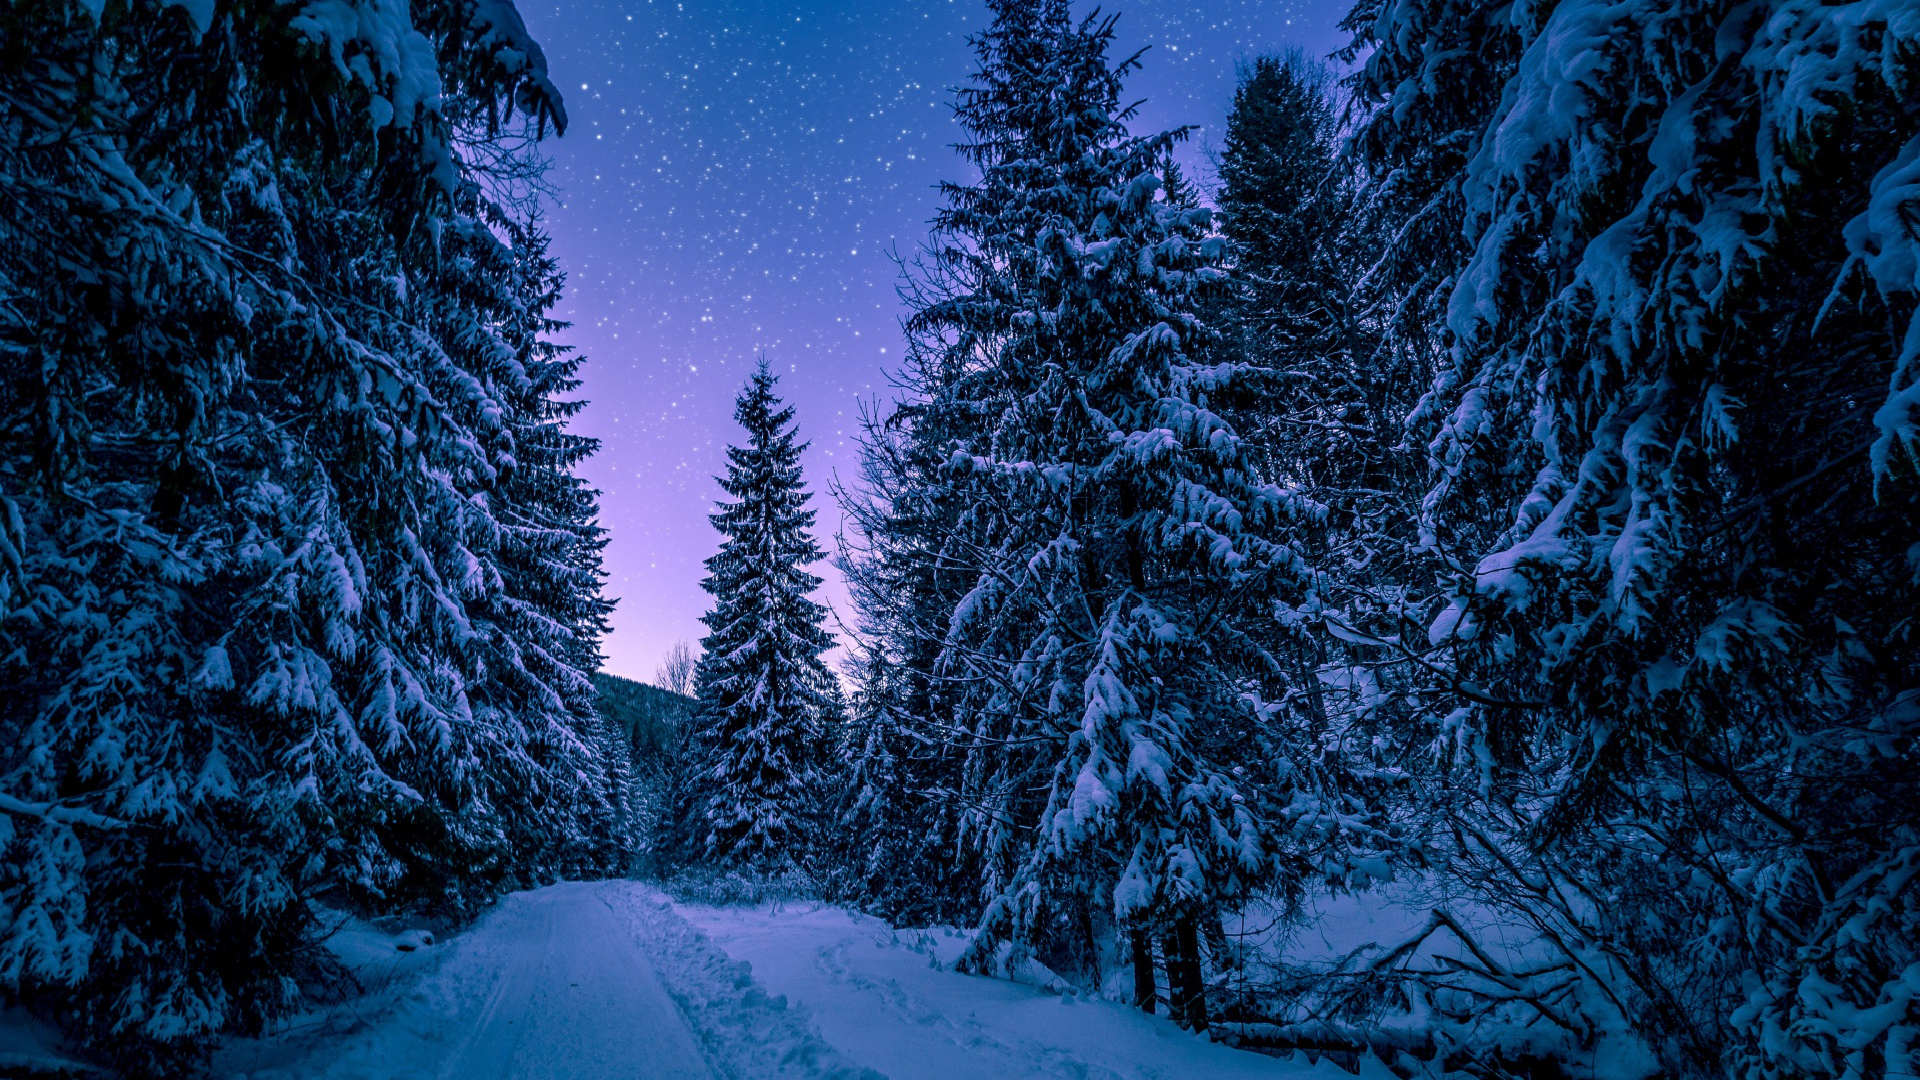 winter,,firtrees,creation,snowfall,snow,,woods,spruce,natural state,cold,landscape,fir,fir tree,scenic,snowy,snow,pine,wood,forest,stars,nightsky,scenery,conifers,nature,coke,frost,freezing,trees,dark,nox,winter,frozen,universe,tree,forest,,night